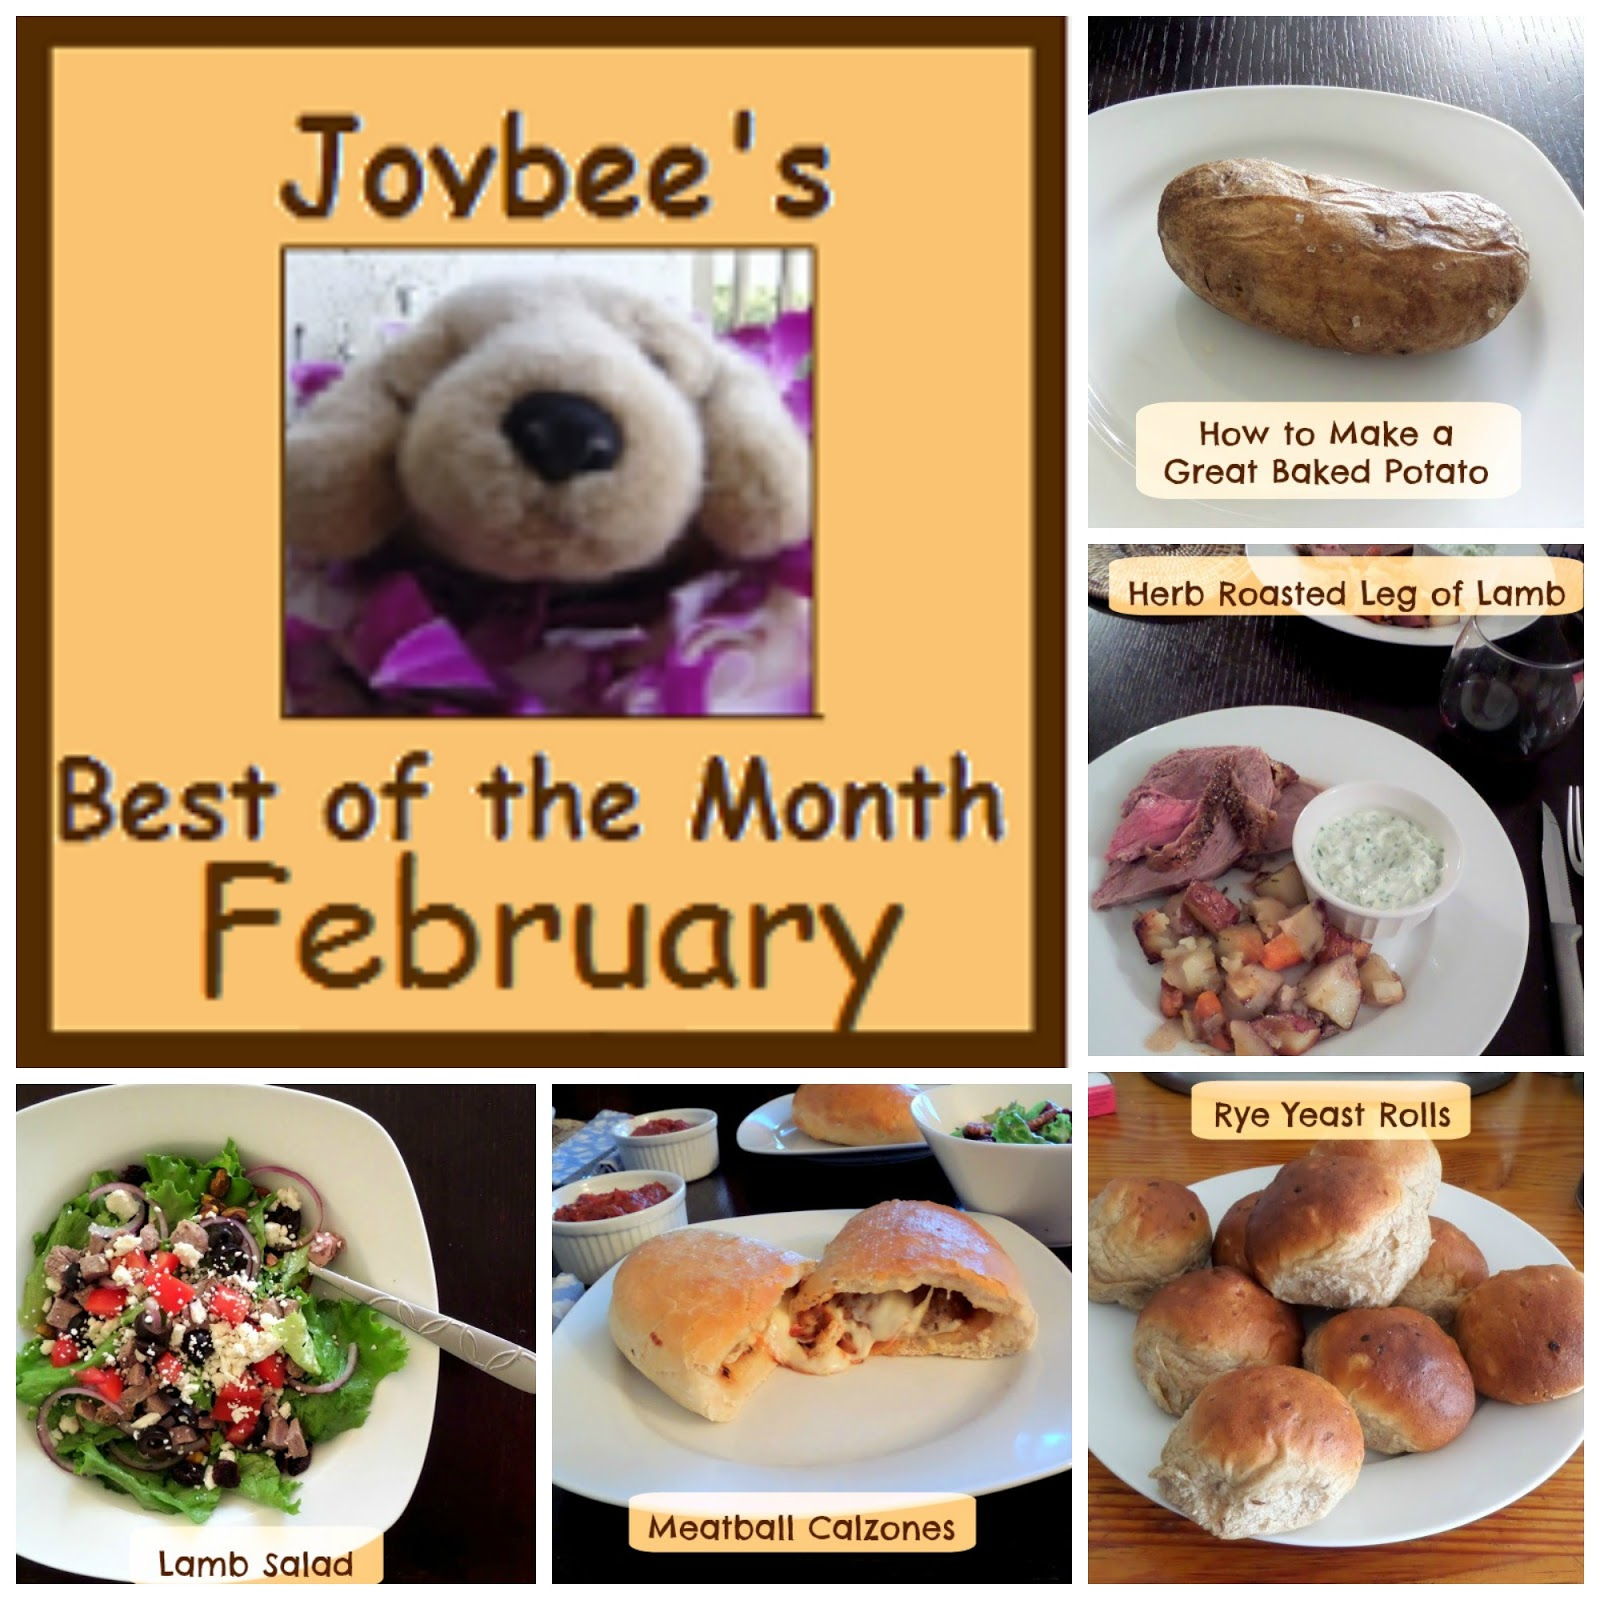 Best of the Month February 2015:  A recap of my most popular posts from February 2015.